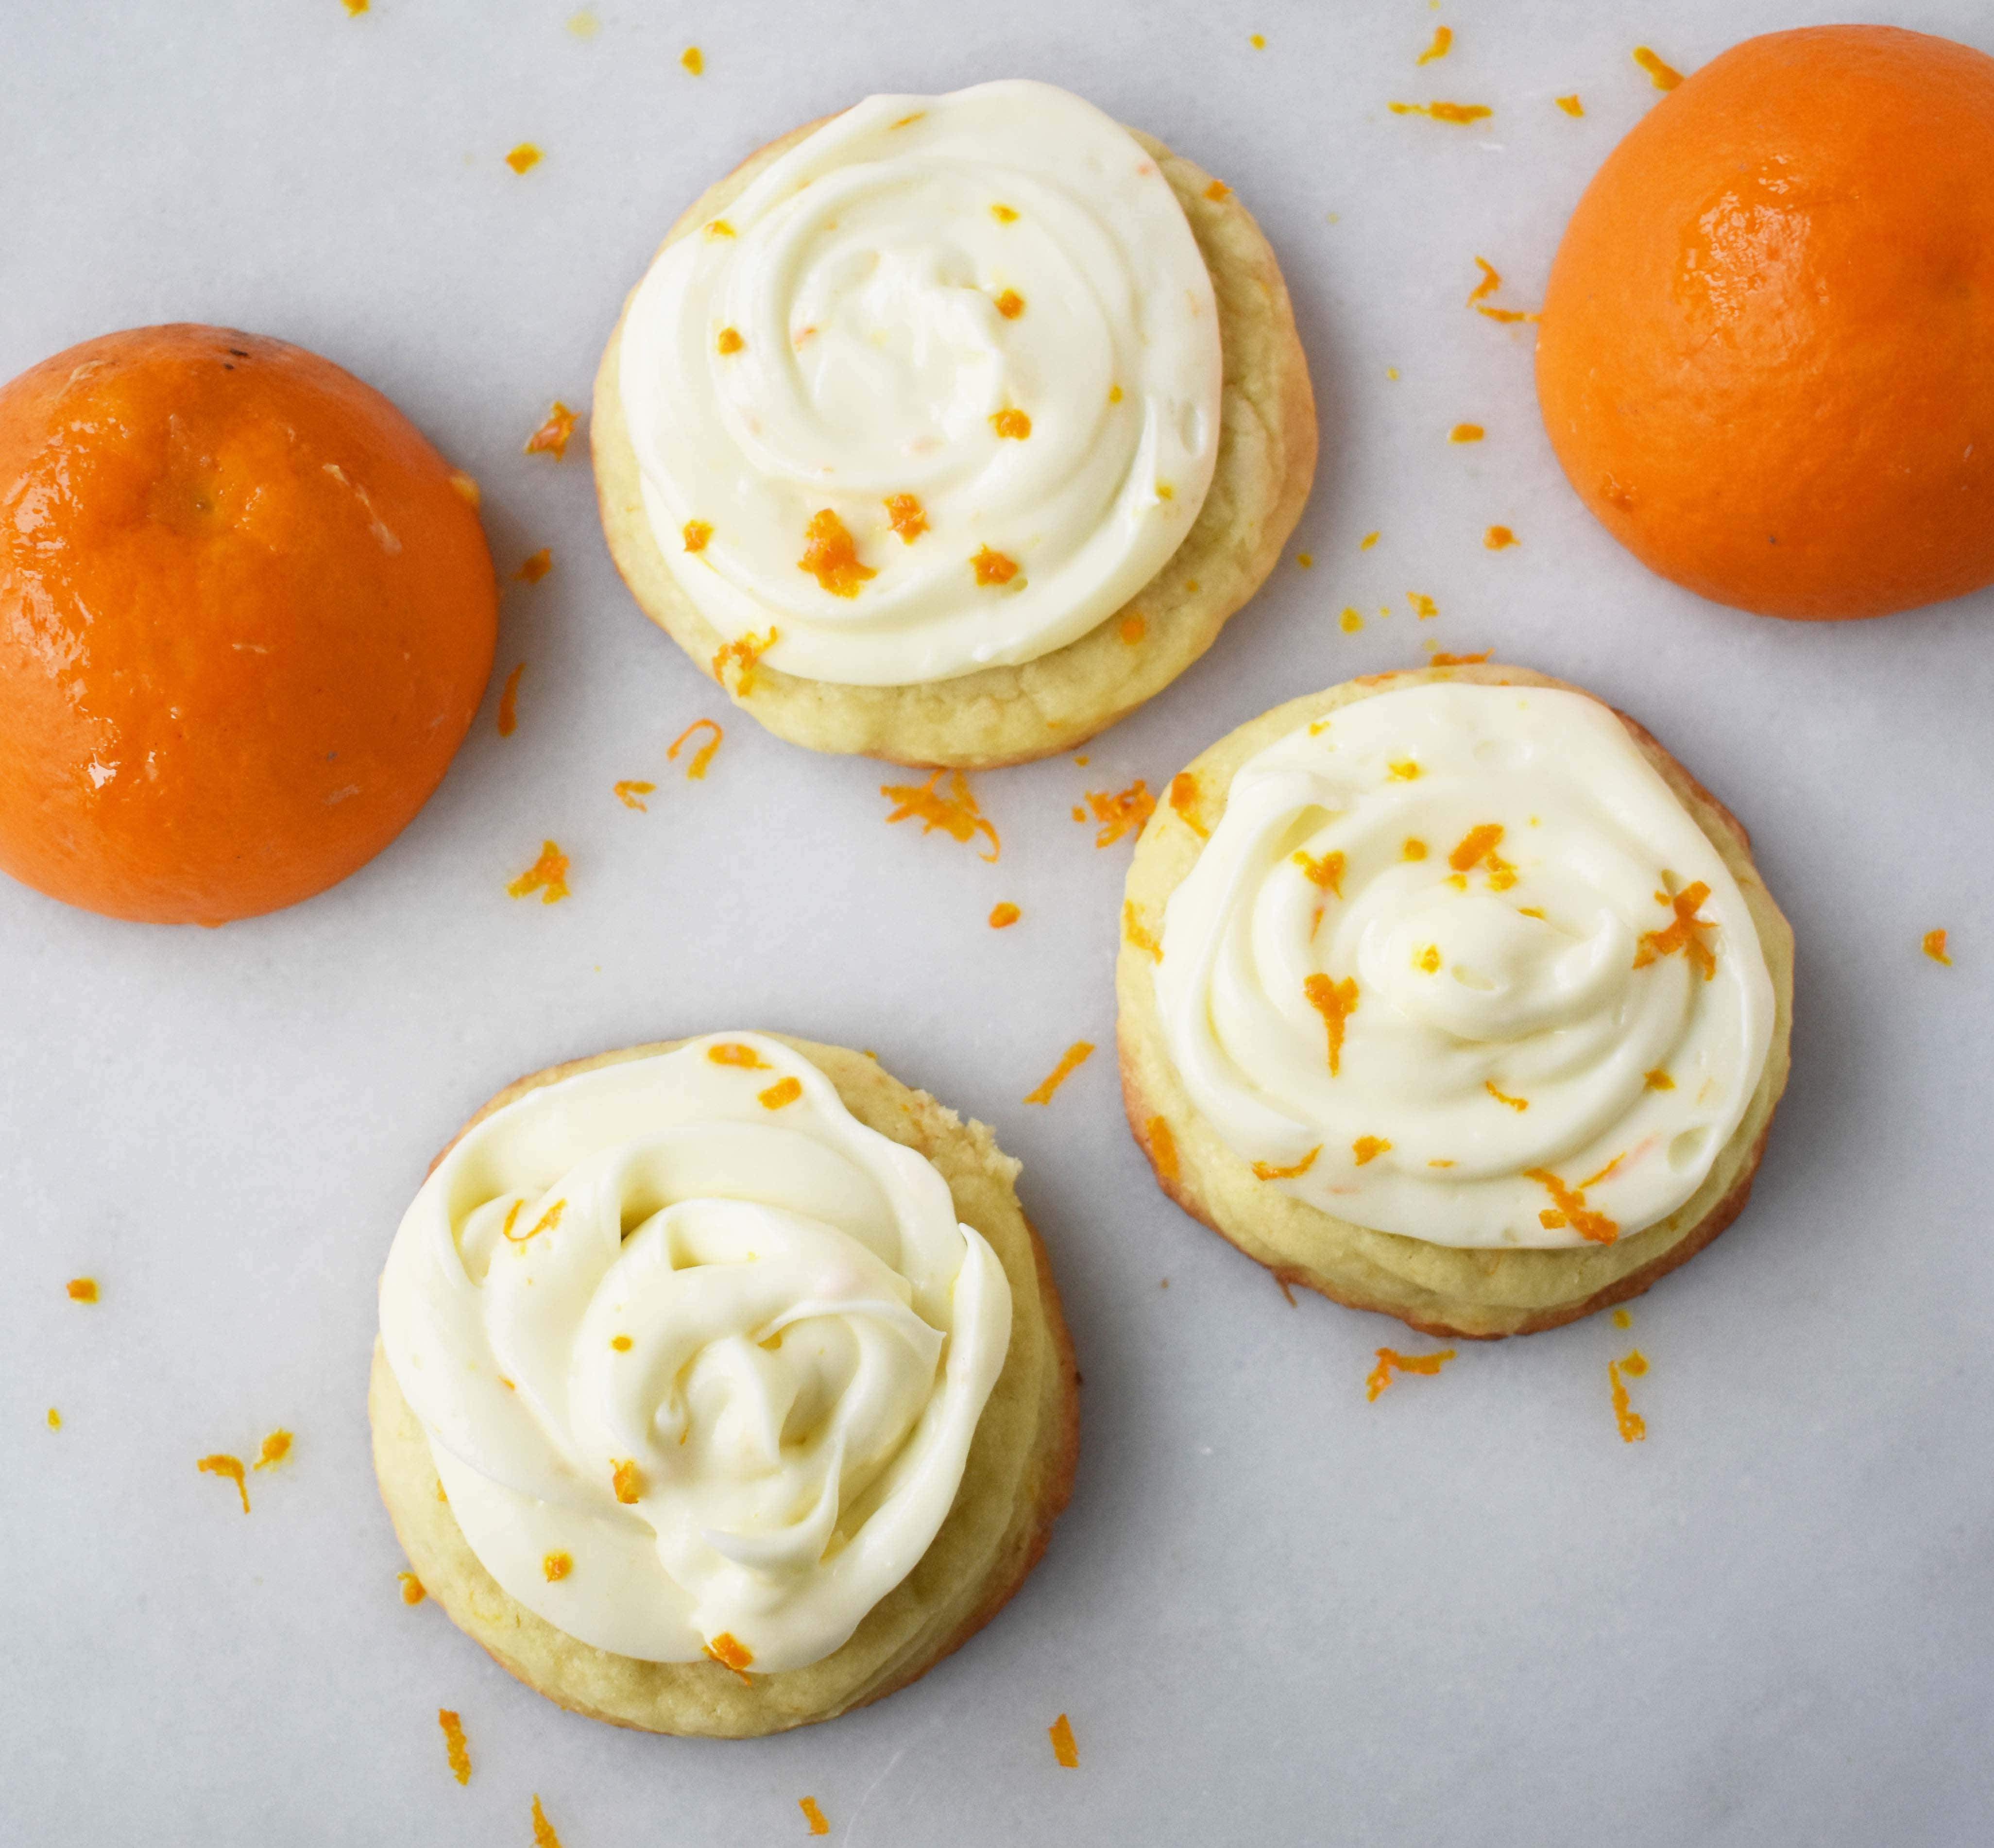 RubySnap Judy Orange Cream Cookies. Soft citrus orange dough cookie topped with sweet orange cream cheese frosting. An orange cream lovers dream cookie! www.modernhoney.com